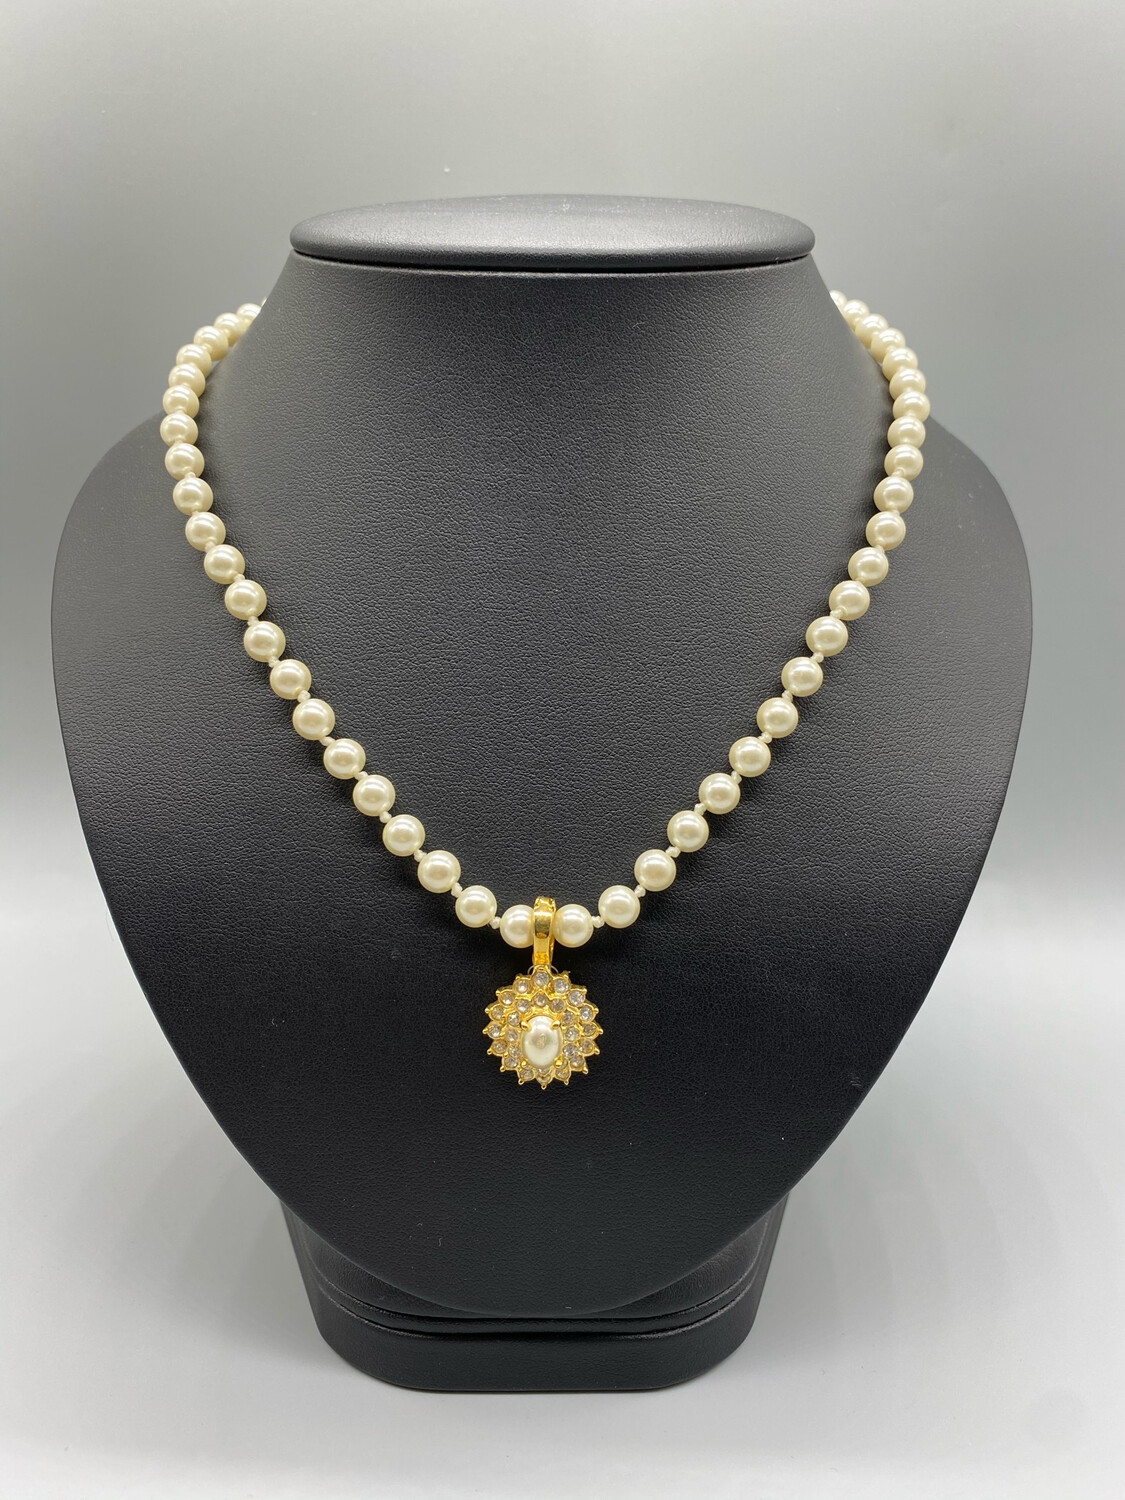 Vintage Pearl Necklace With Gold Pendant